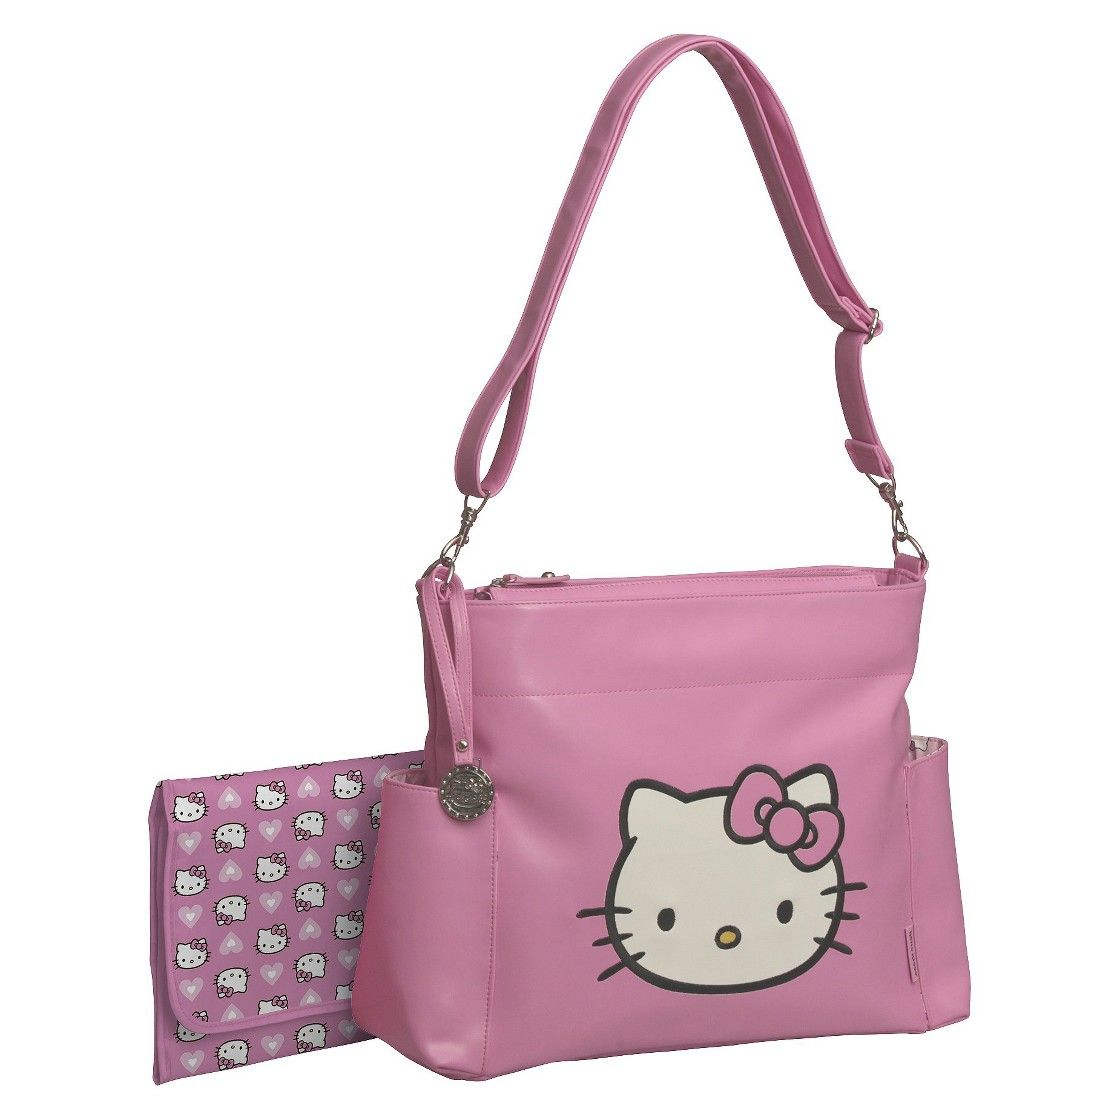 Hello Kitty Diaper Bag Tote - Pink  43c4561c0817d